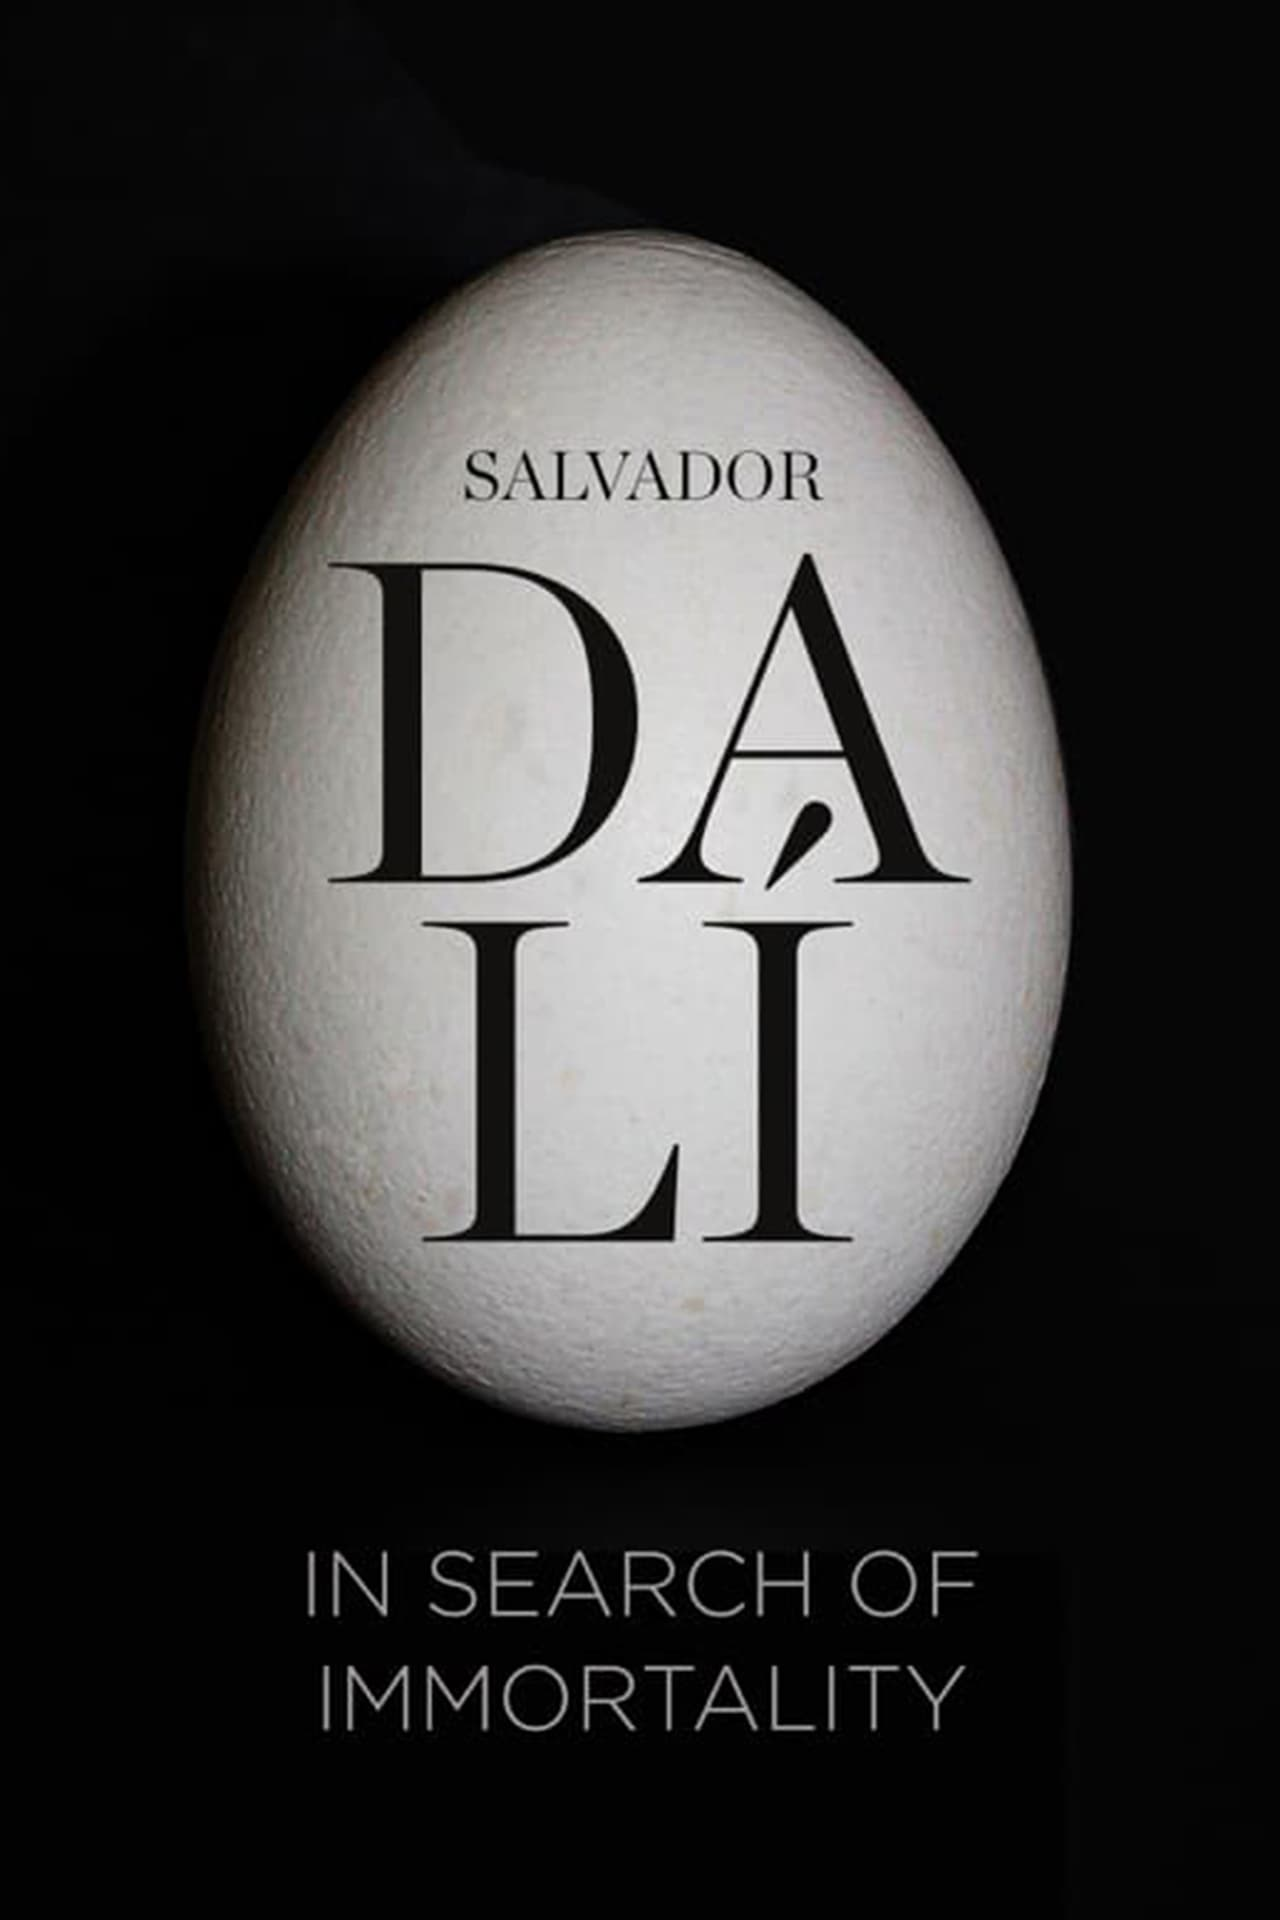 Salvador Dalí: In Search of Immortality